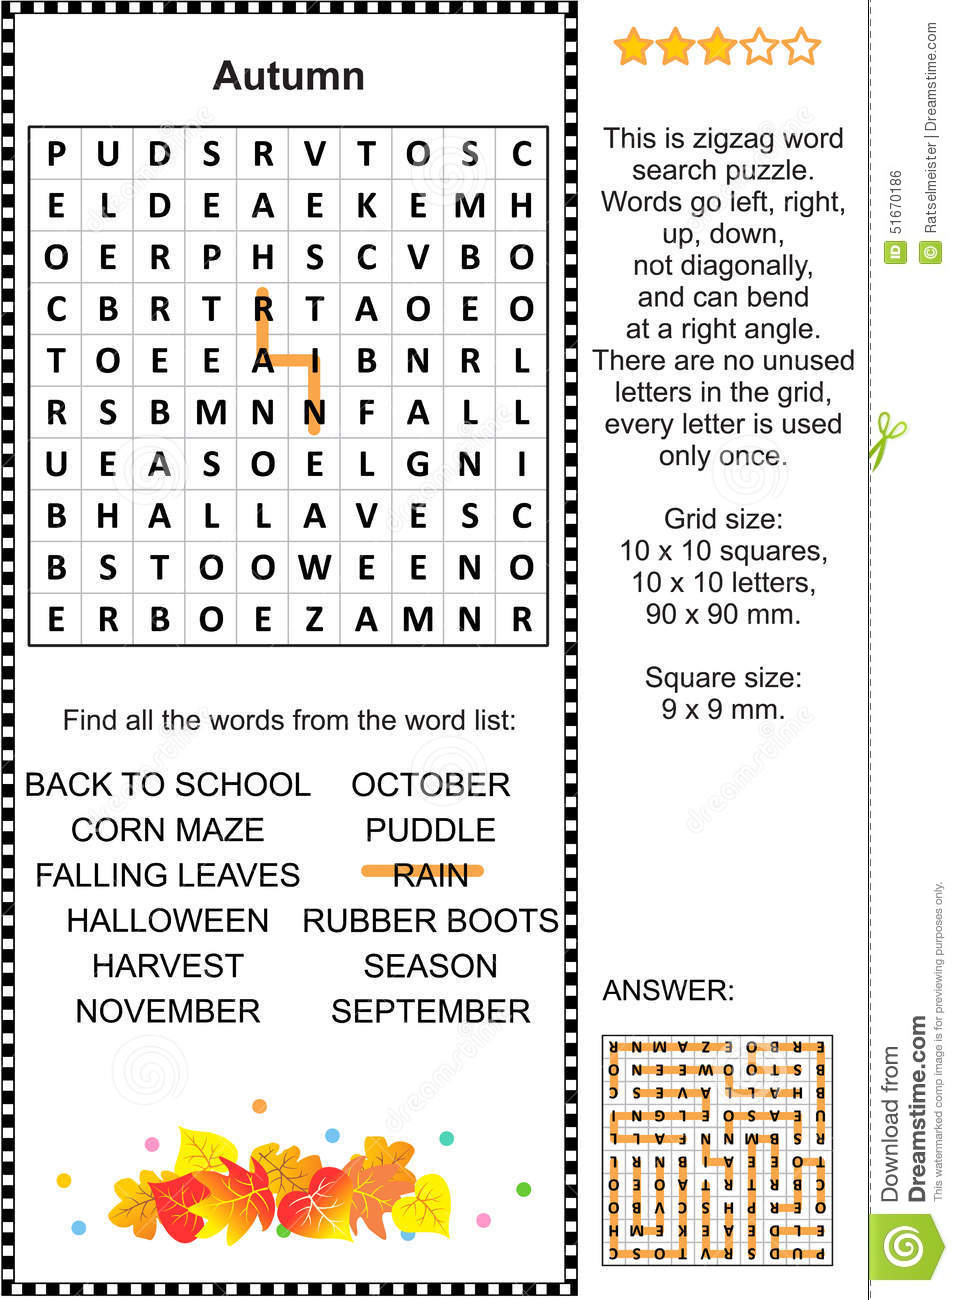 Fall harvest party word search puzzle - Find these words ...